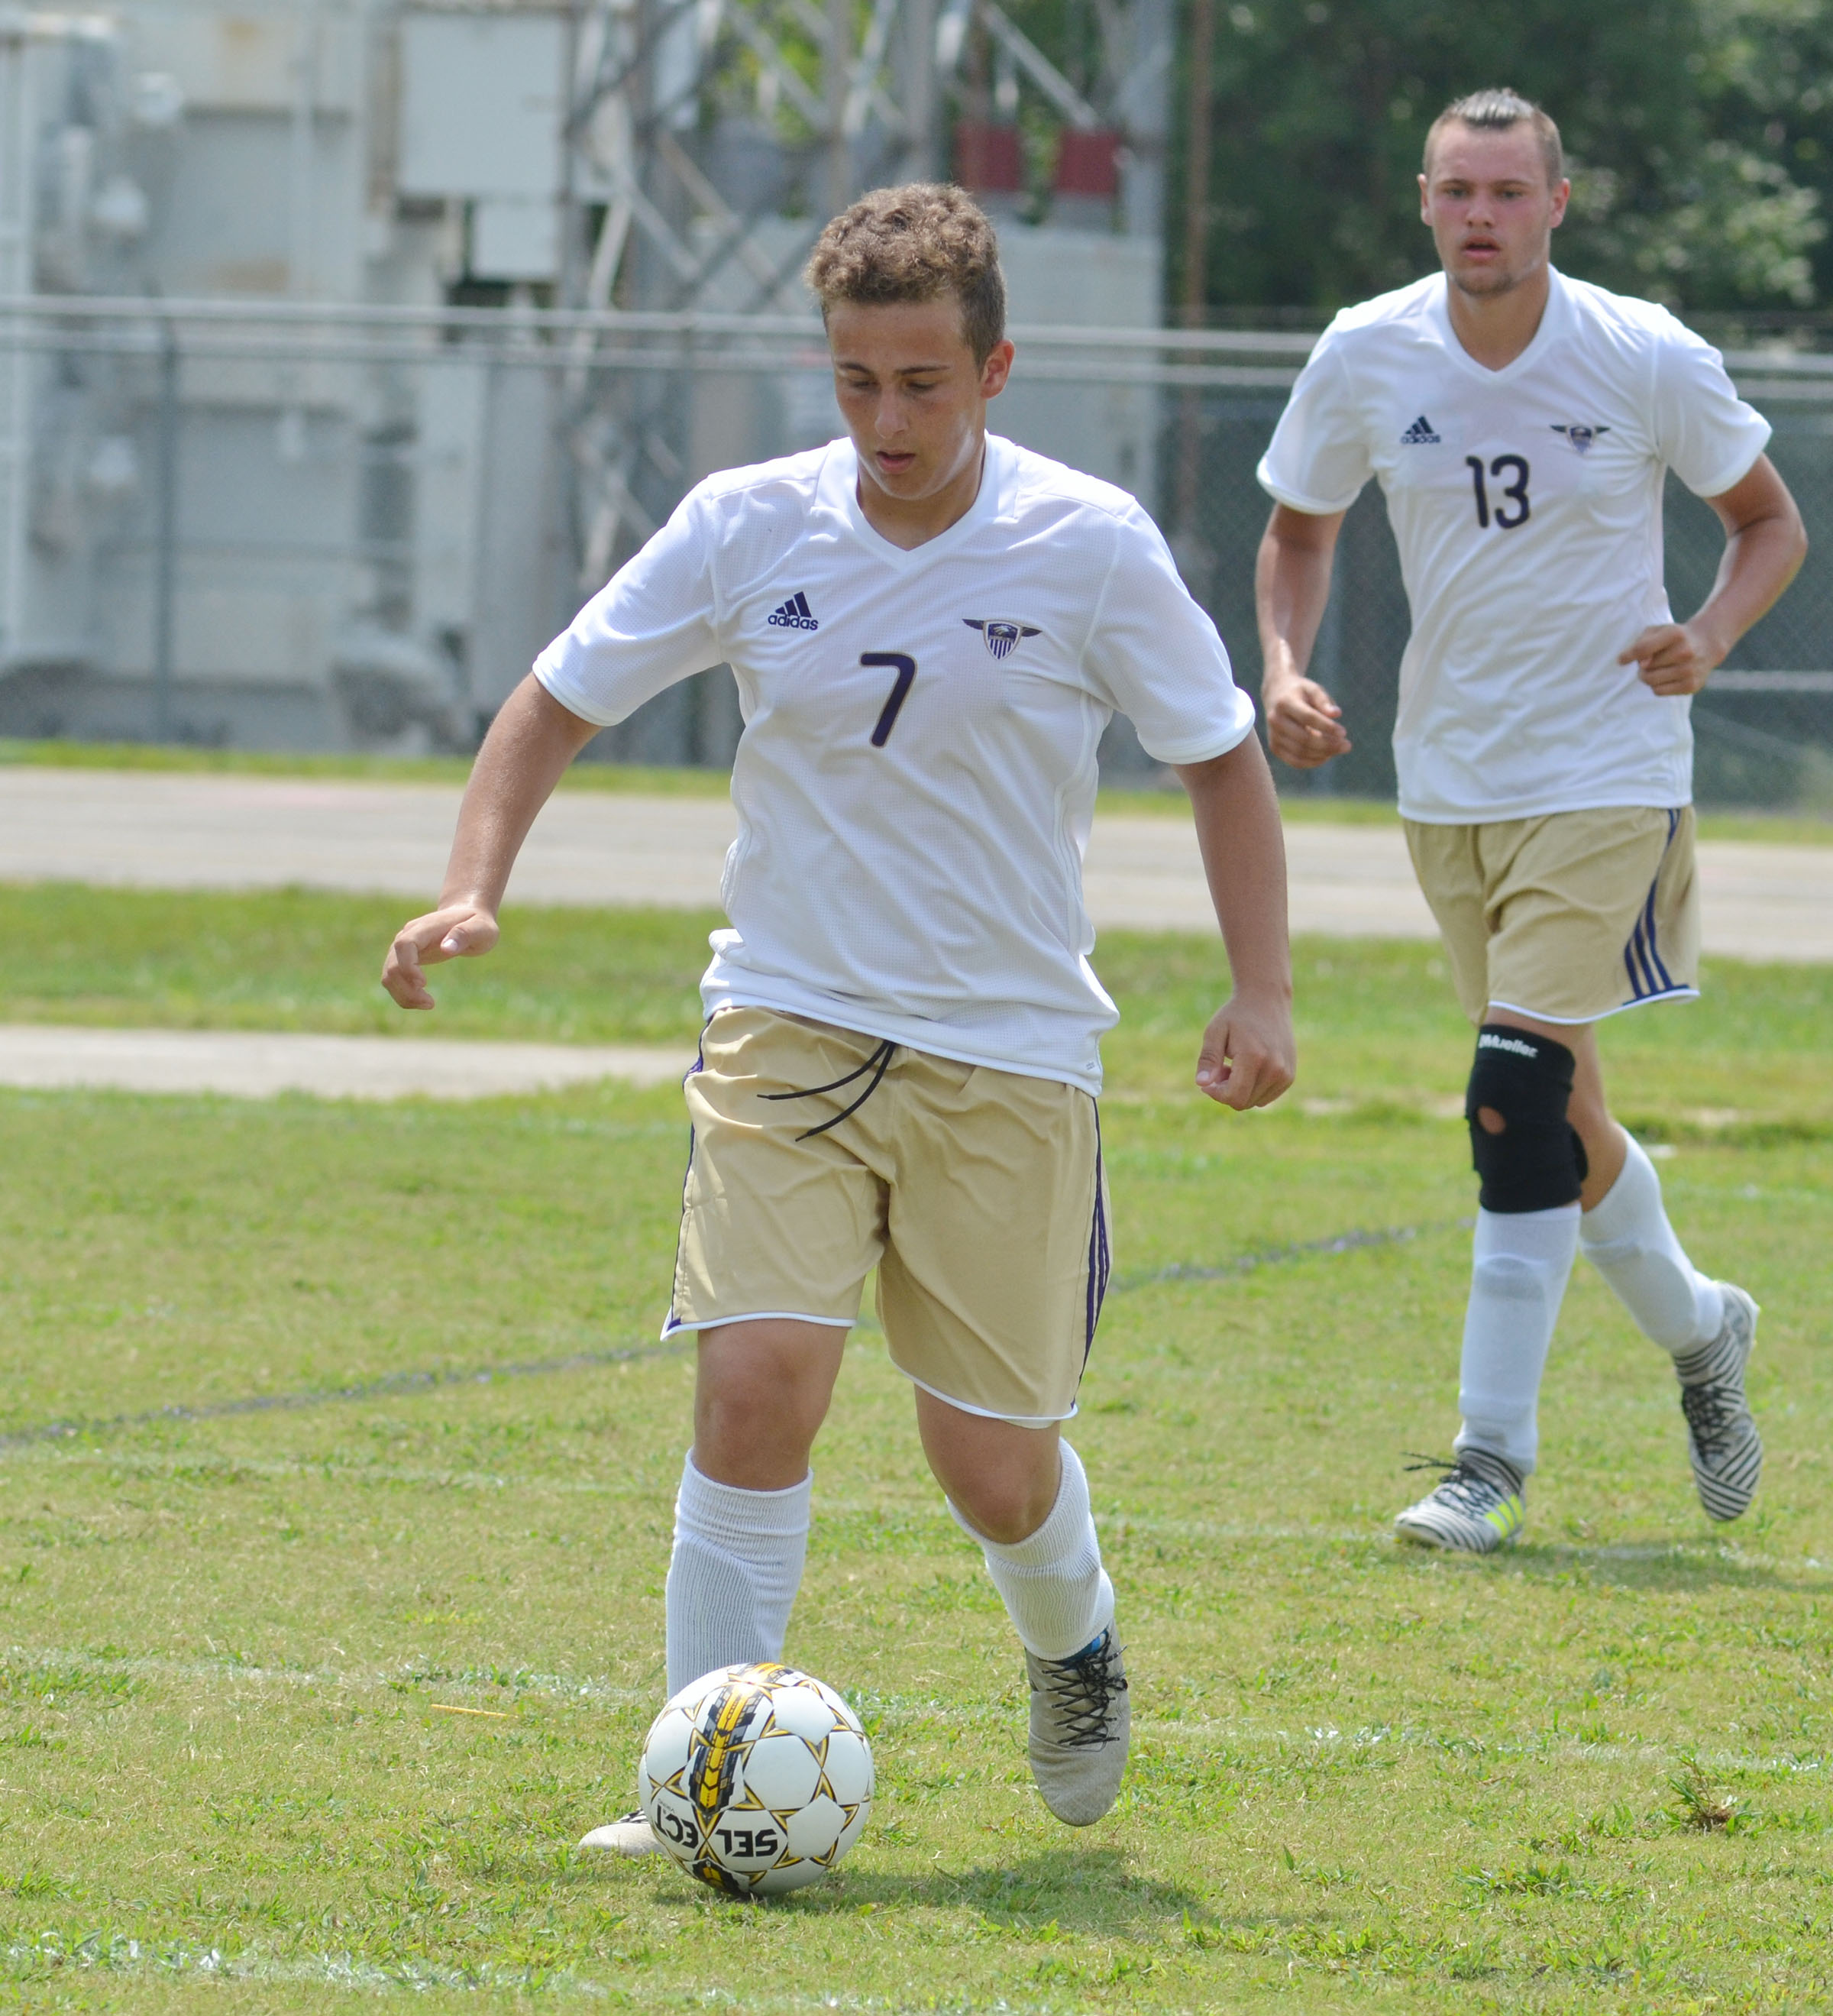 CHS junior Brody Weeks kicks the ball toward the goal.